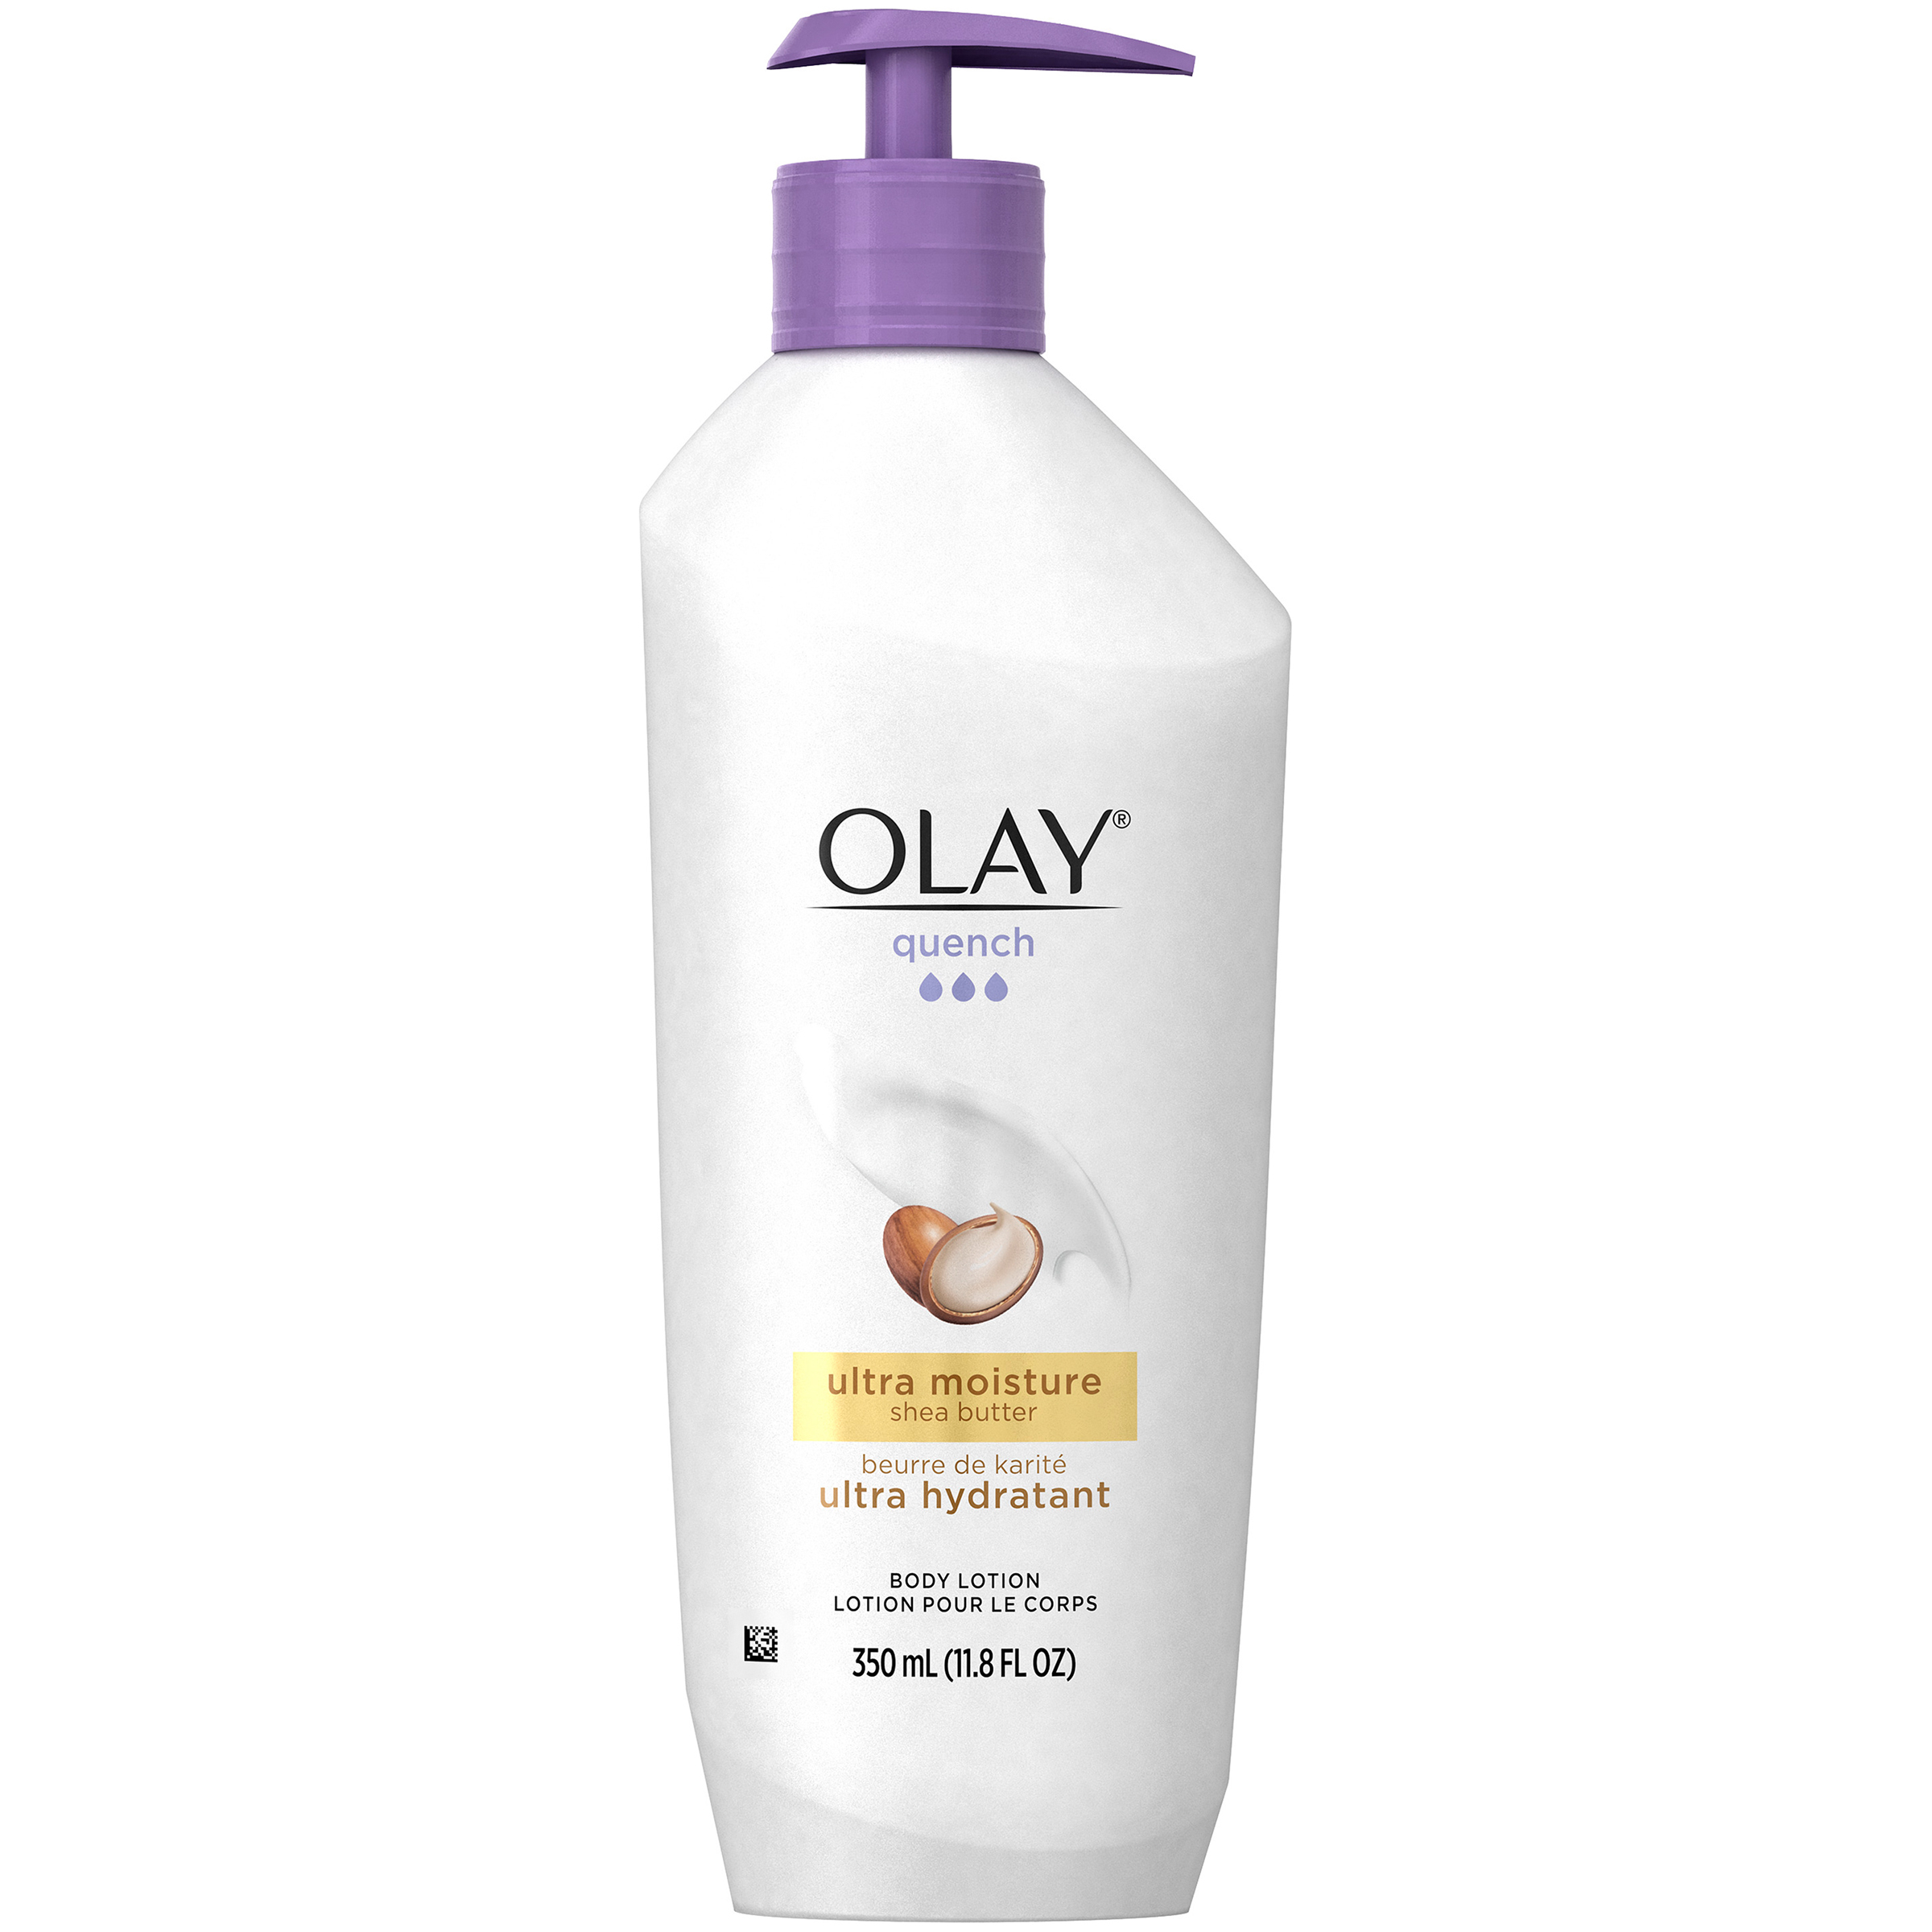 Olay® Quench Ultra Moisture Shea Butter Body Lotion 11.8 fl. oz. Pump